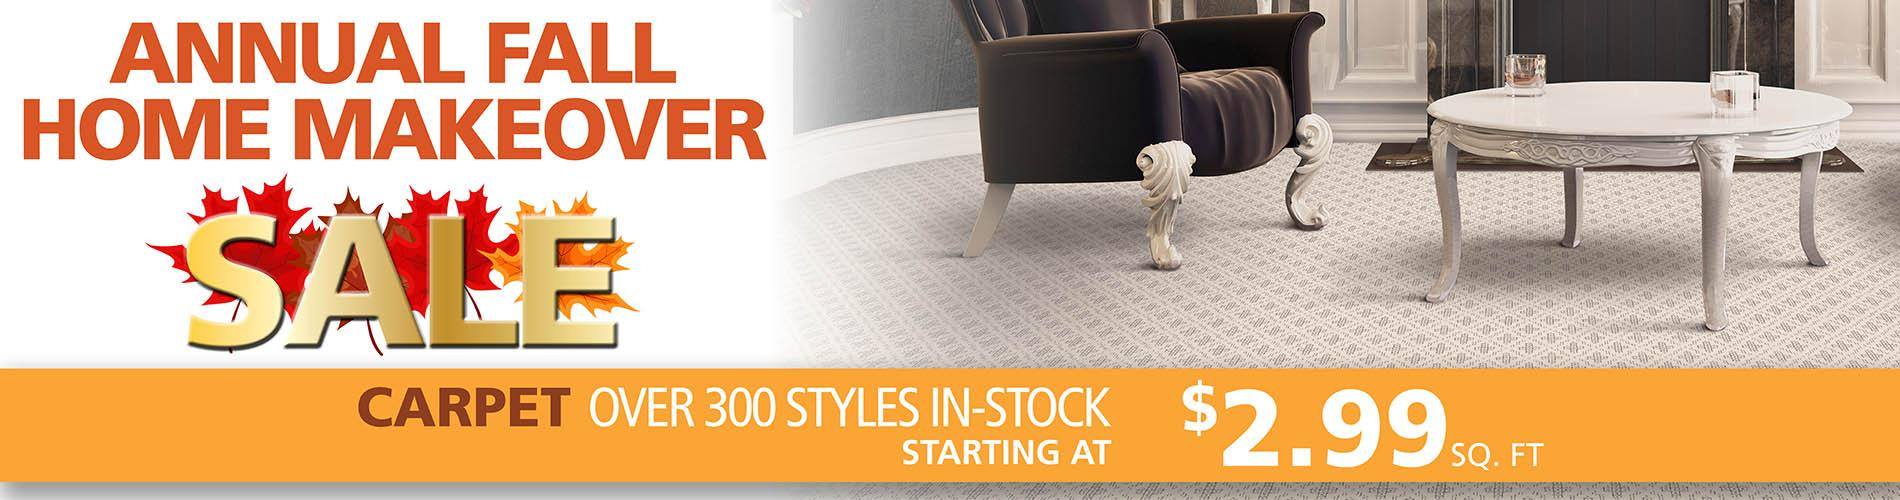 We have over 300 styles of in-stock carpet starting at $2.99 sq. ft during our Annual Fall Home Makeover Sale